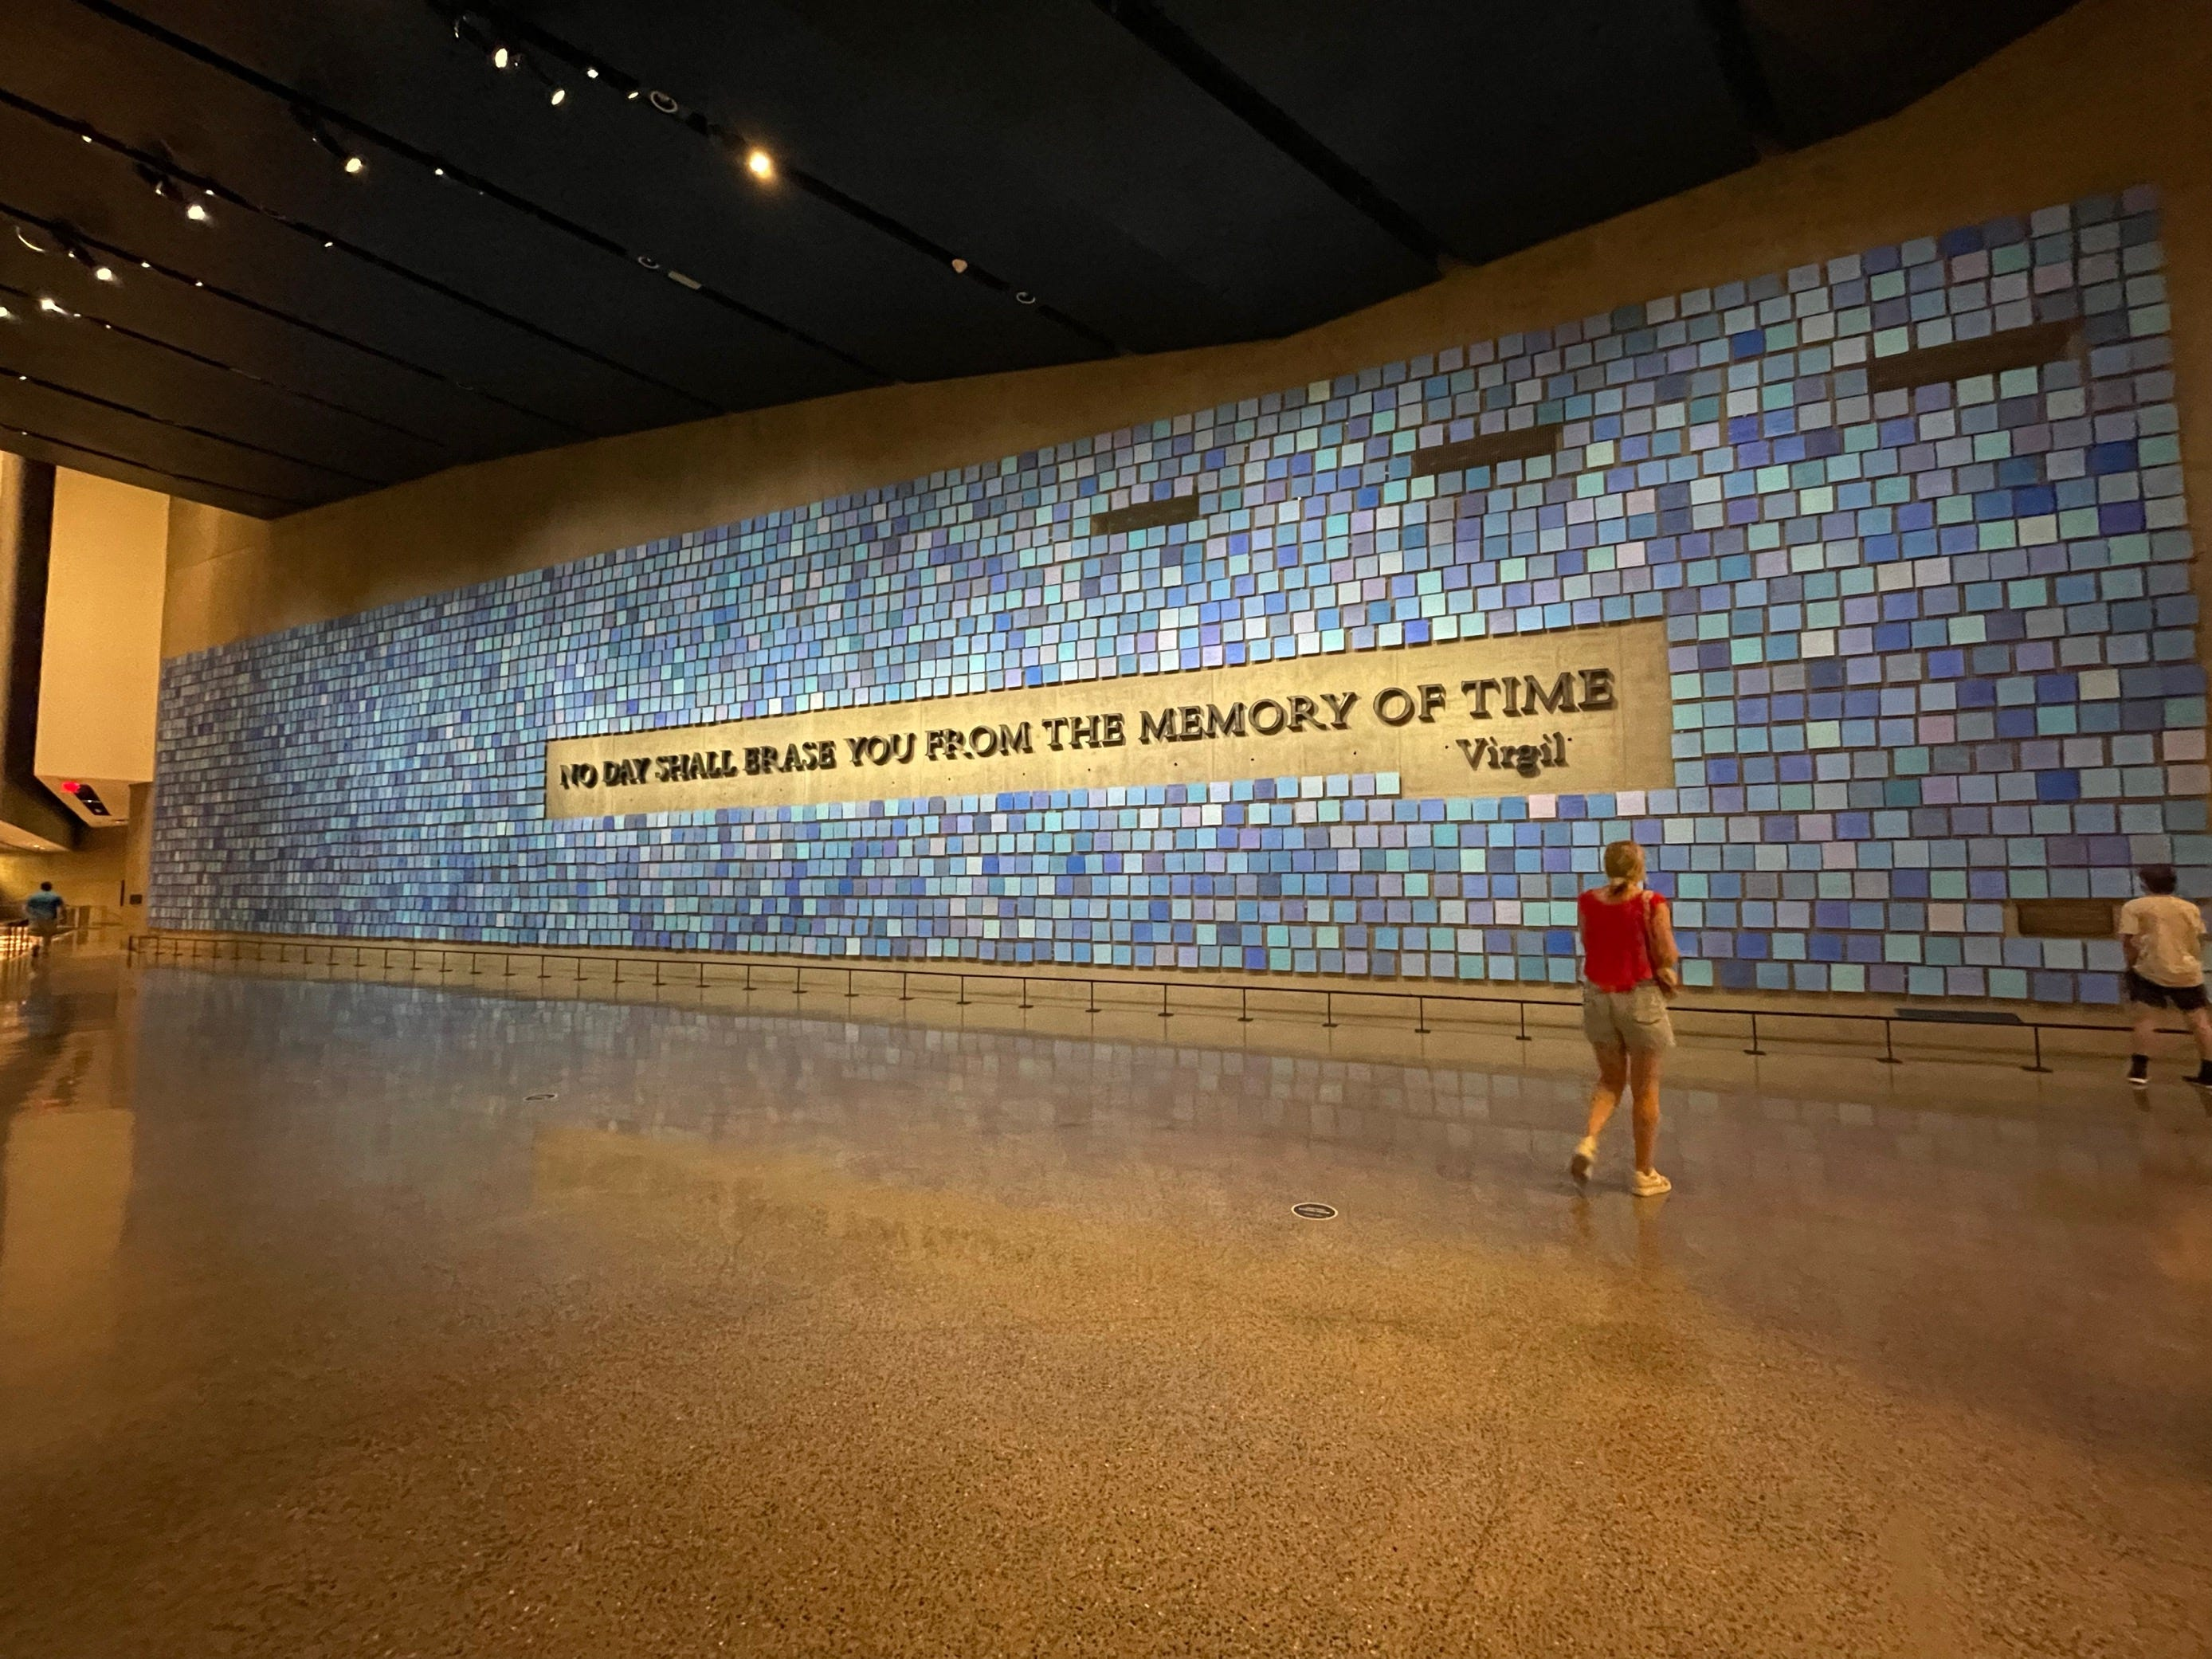 The ancient Roman poet Virgil's words memorialize the estimated 3,000 people killed in the 9/11 attacks on the twin towers.